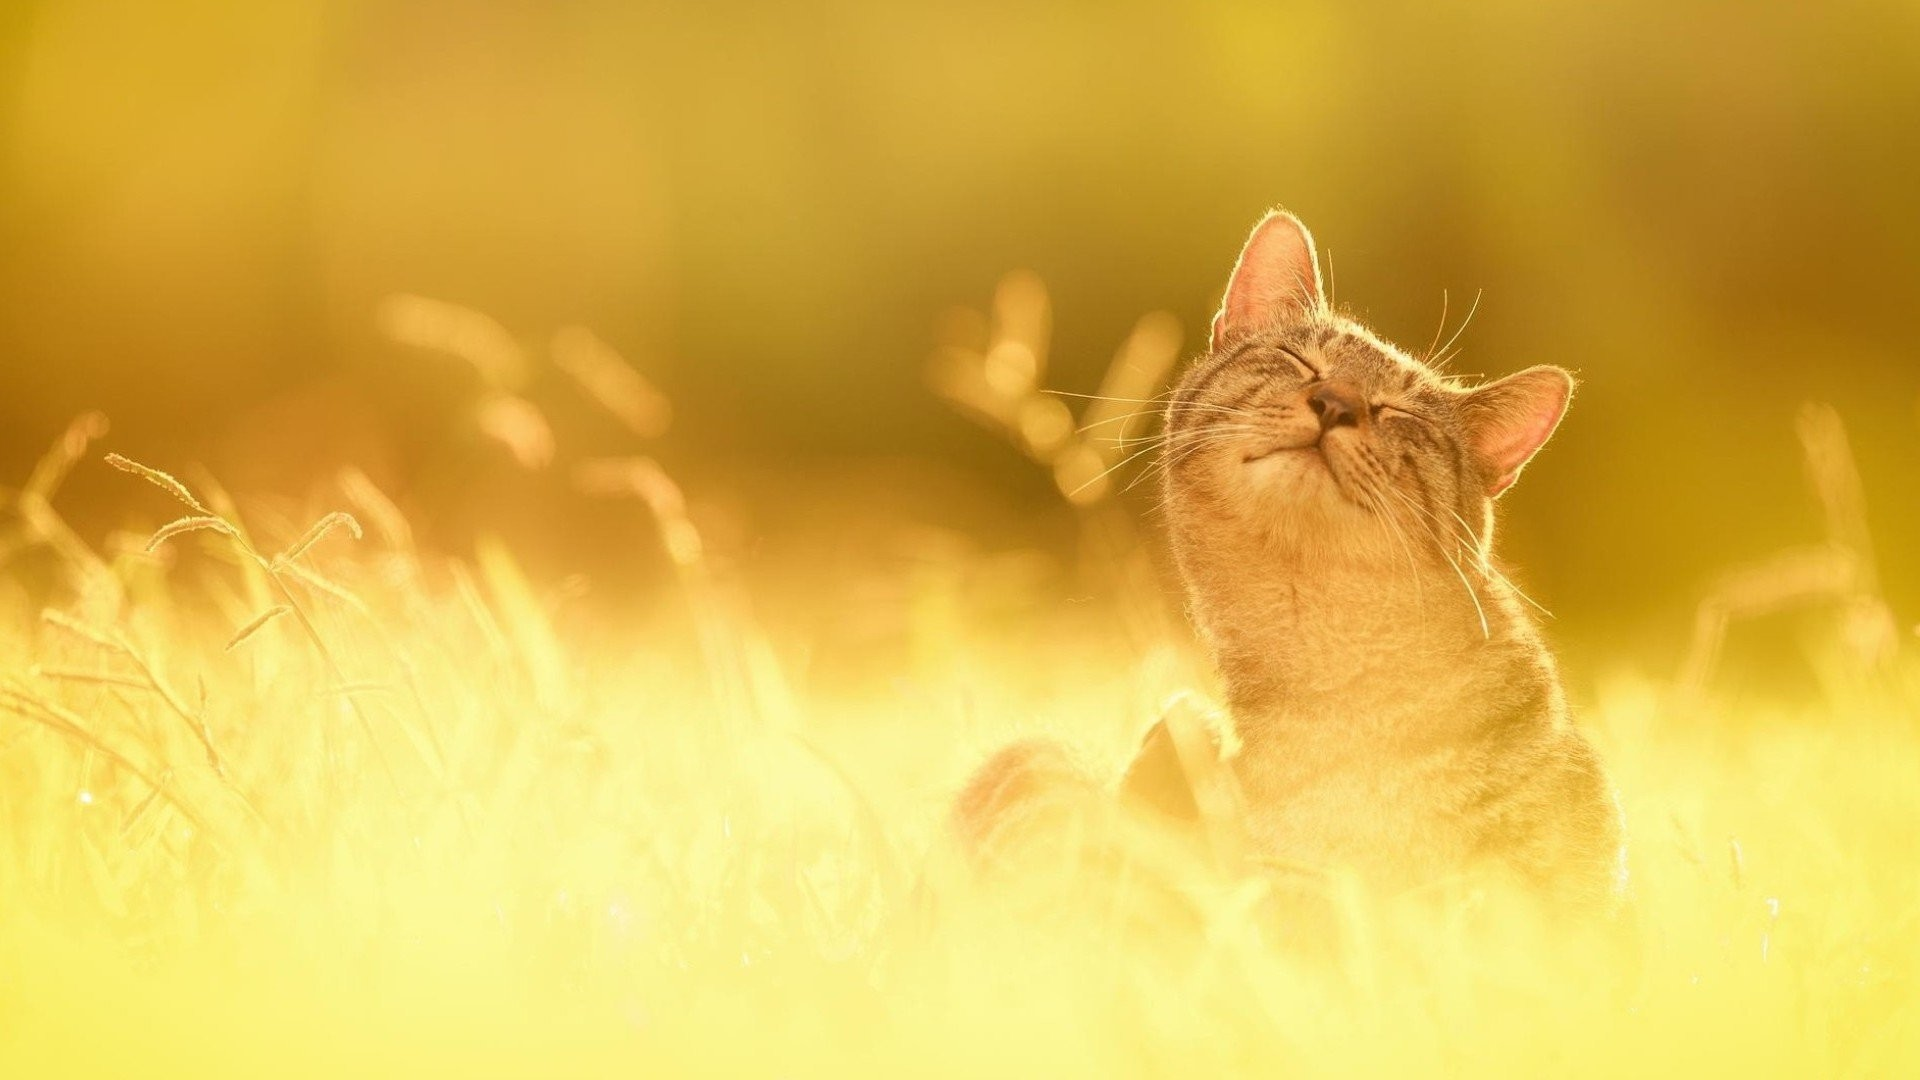 1920x1080 Nature cat cute sunshine summer wallpaper |  | 818129 | WallpaperUP